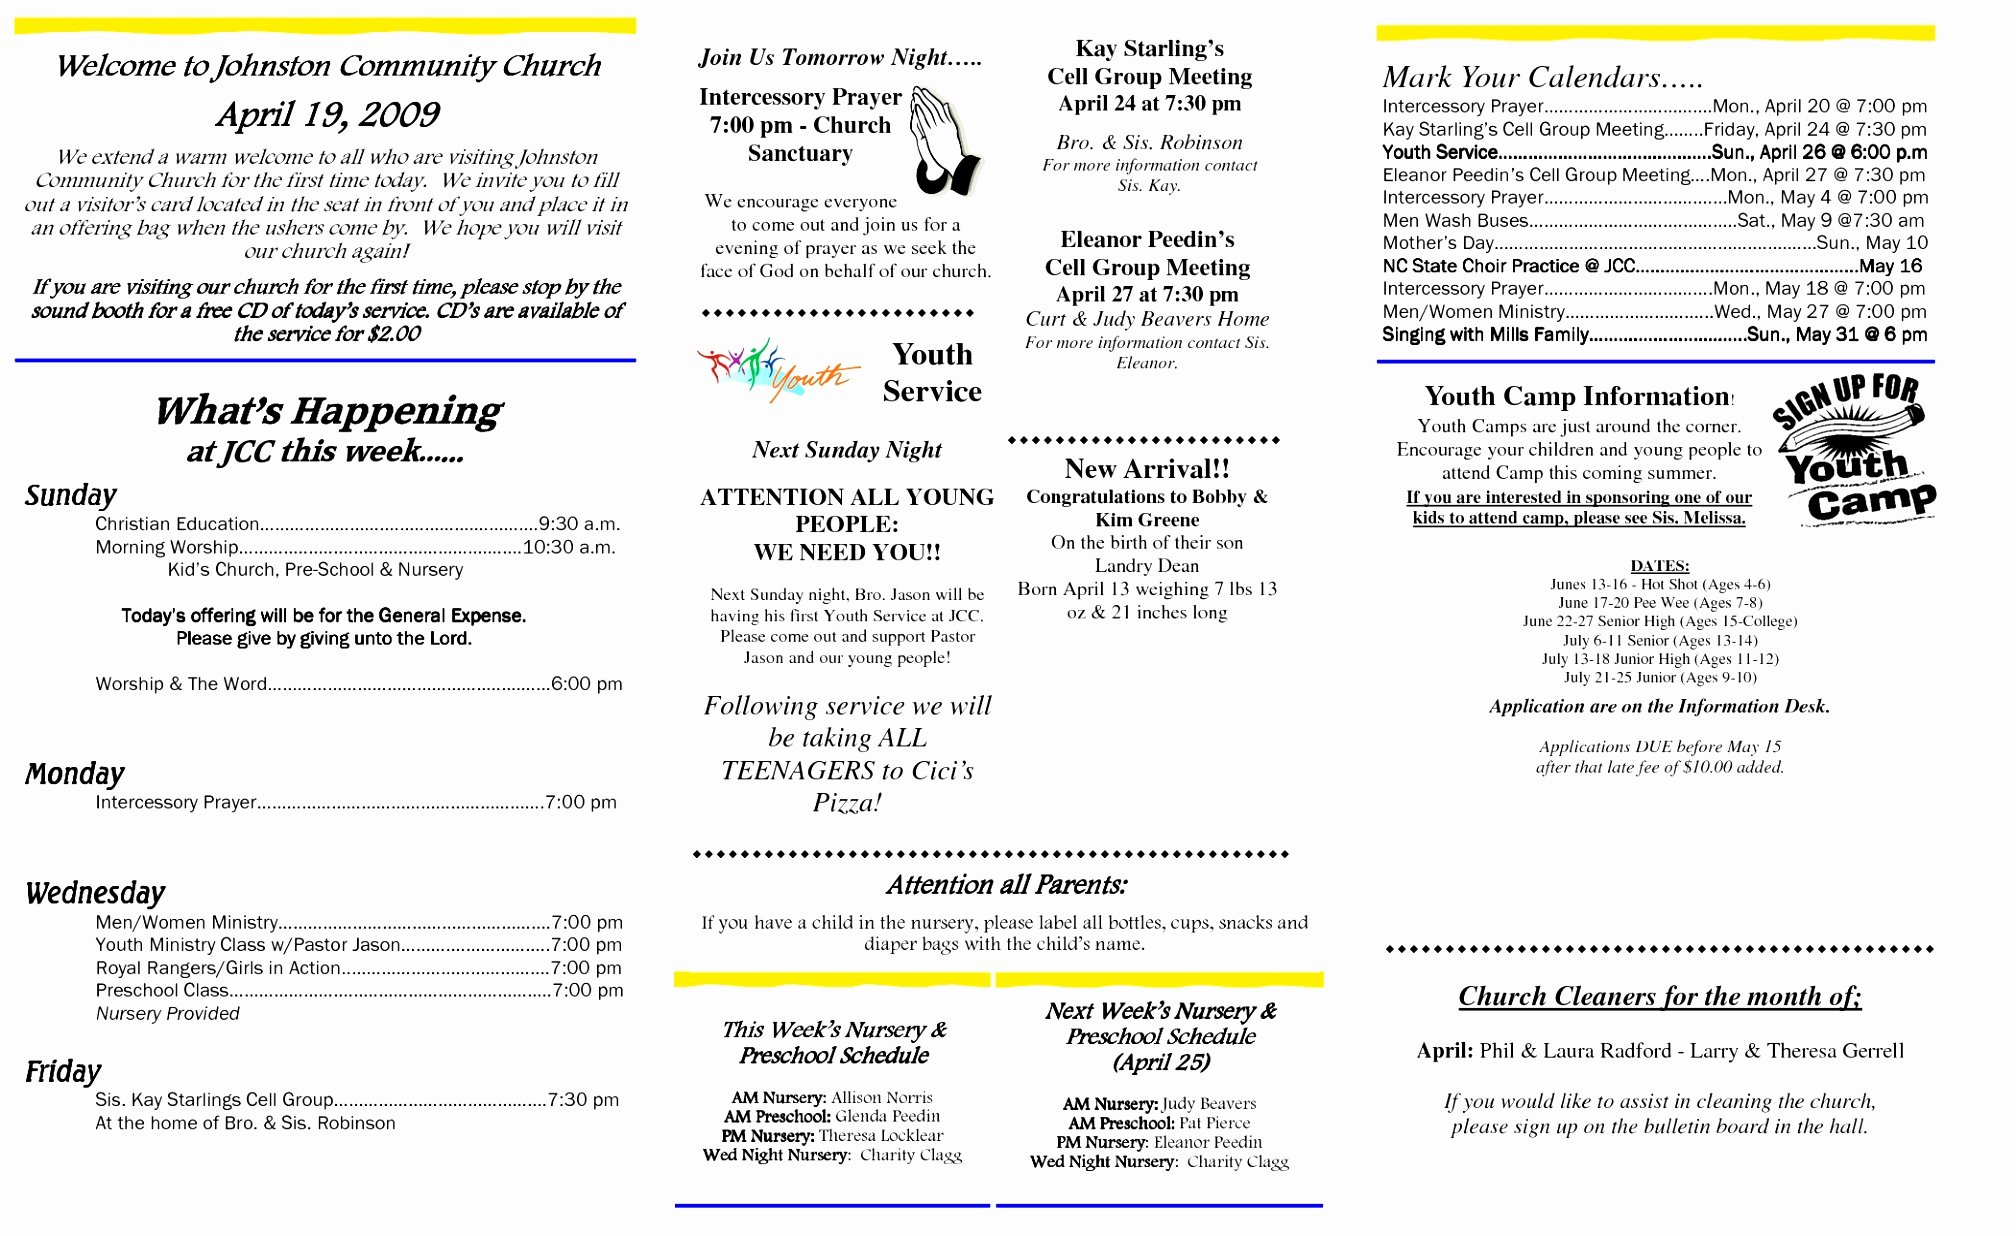 Free Church Bulletin Templates Awesome 12 Church Bulletin Template Microsoft Word Oinwy